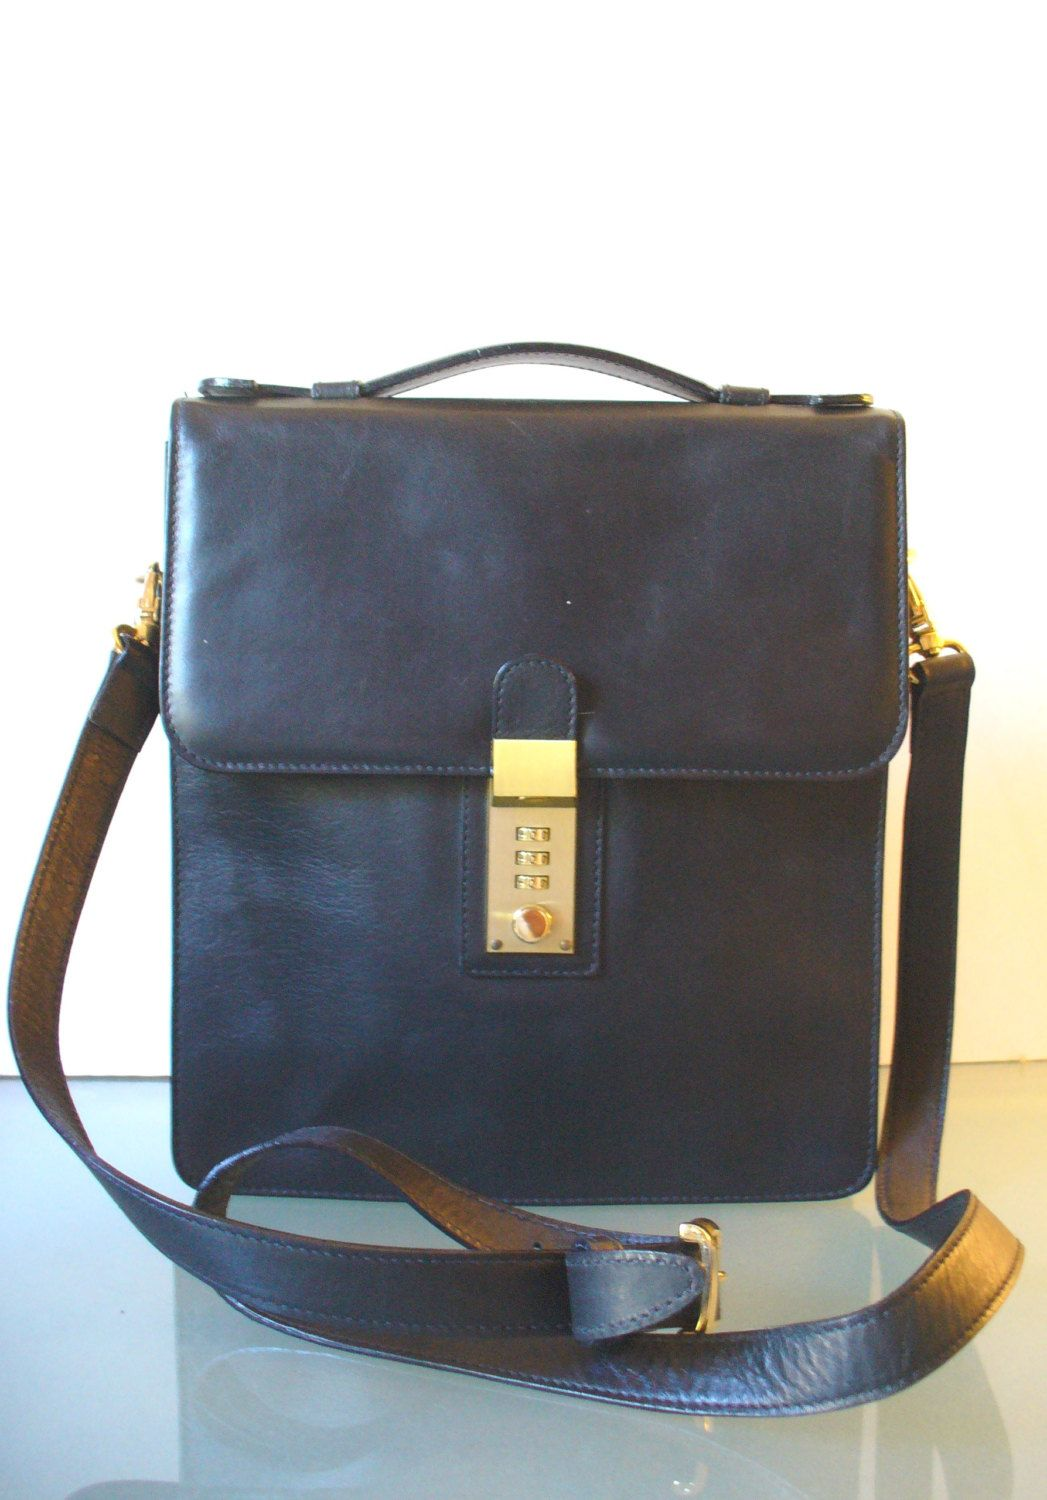 Michelangelo Black Messenger Bag Made In Italy By Eurotraaly On Etsy Vintage Italian Pen Holders